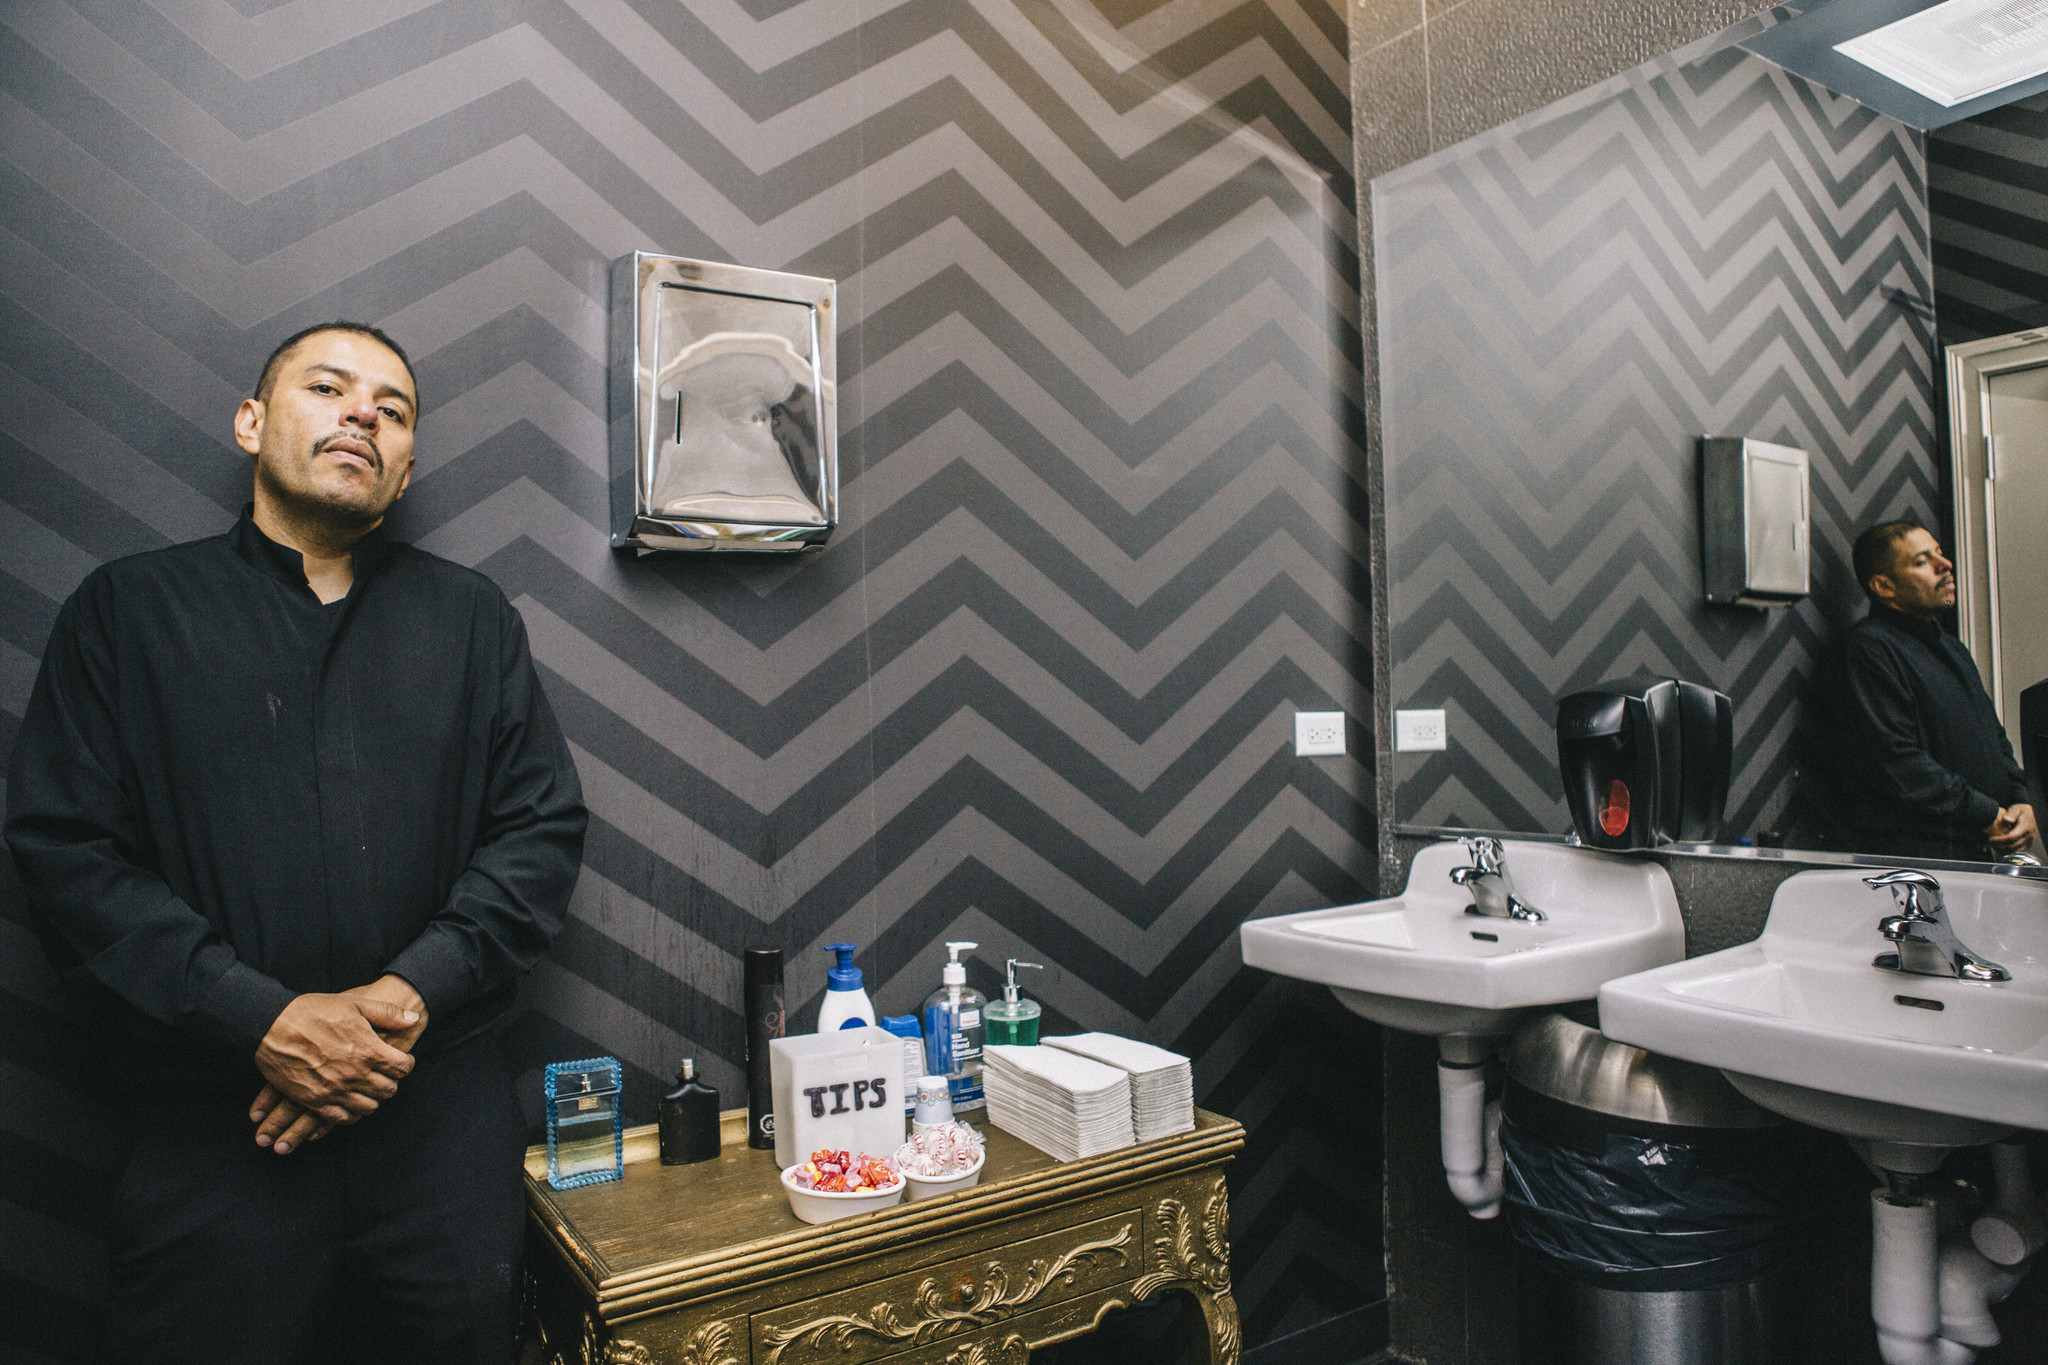 It's a dirty job and they do it: life as a nightclub ...